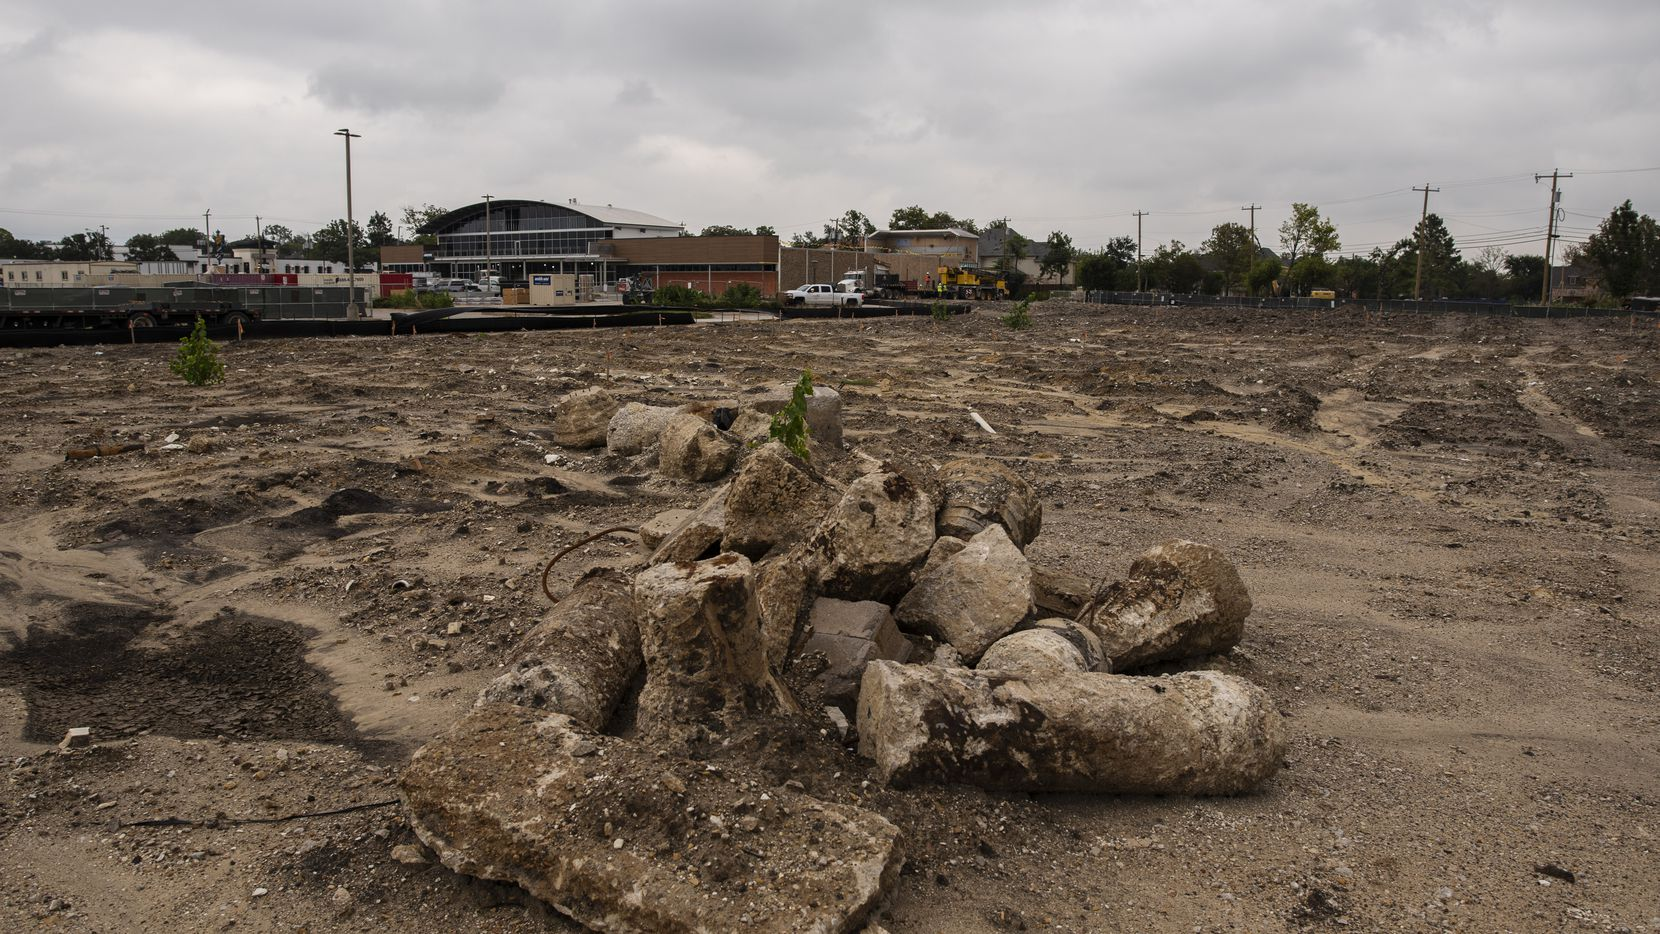 A pile of rubble is shown in the foreground where the Regency Center was located and the ongoing construction for a Central Market, background, at the Preston Oaks shopping center in Dallas, on Oct. 15, 2020. The grocery store and shopping center were badly damaged during a tornado a year ago. The Central Market is scheduled to reopen in 2021.